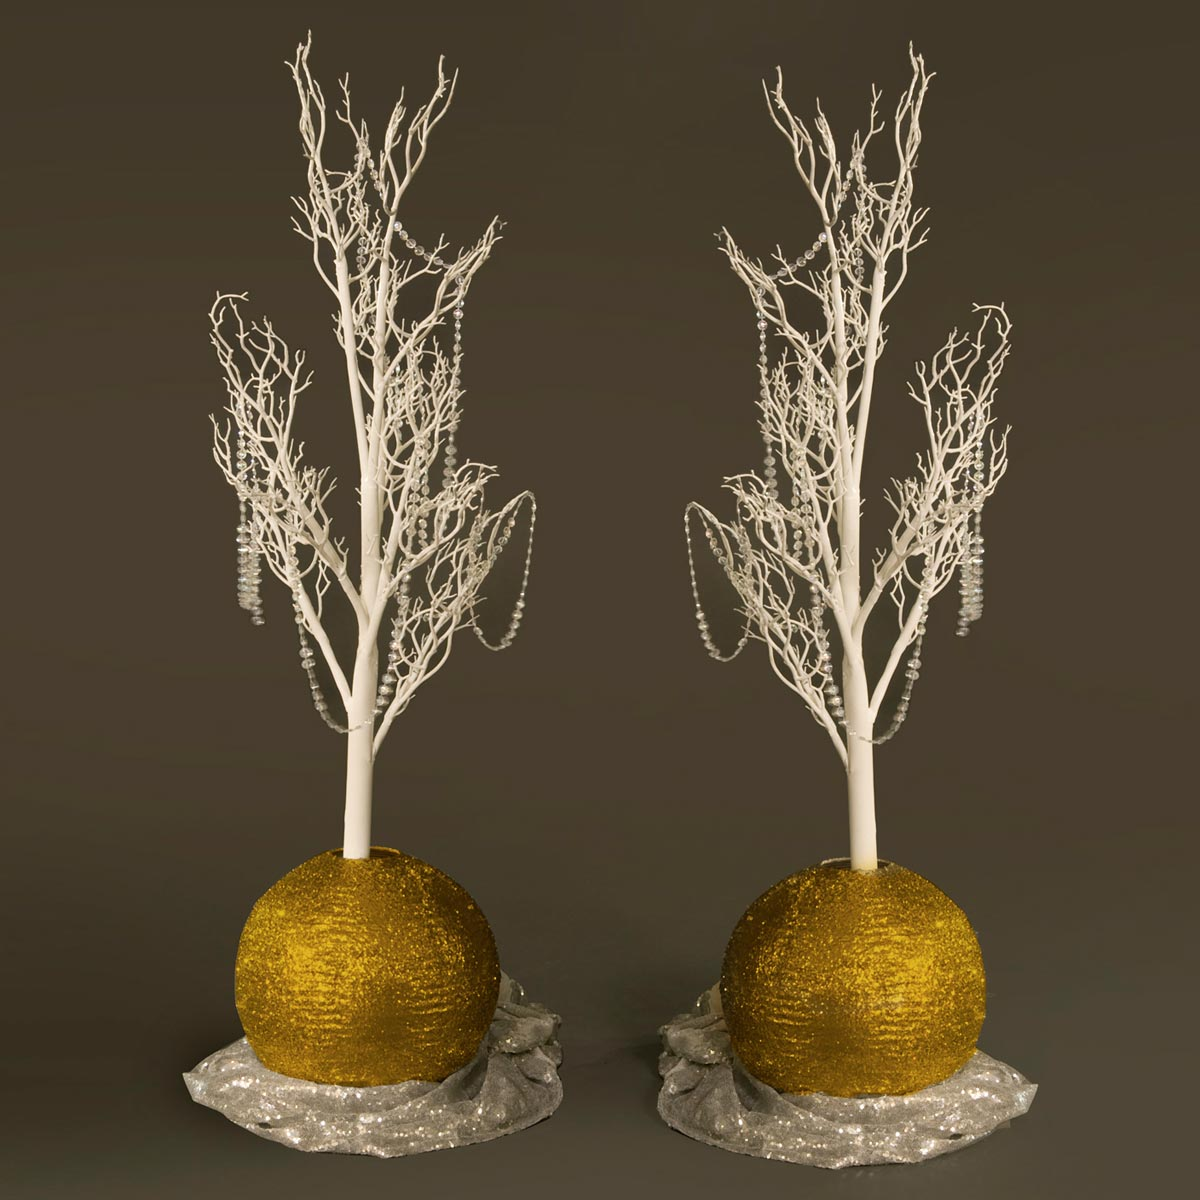 Razzle Dazzle Gold Centerpieces Kit (set of 2)